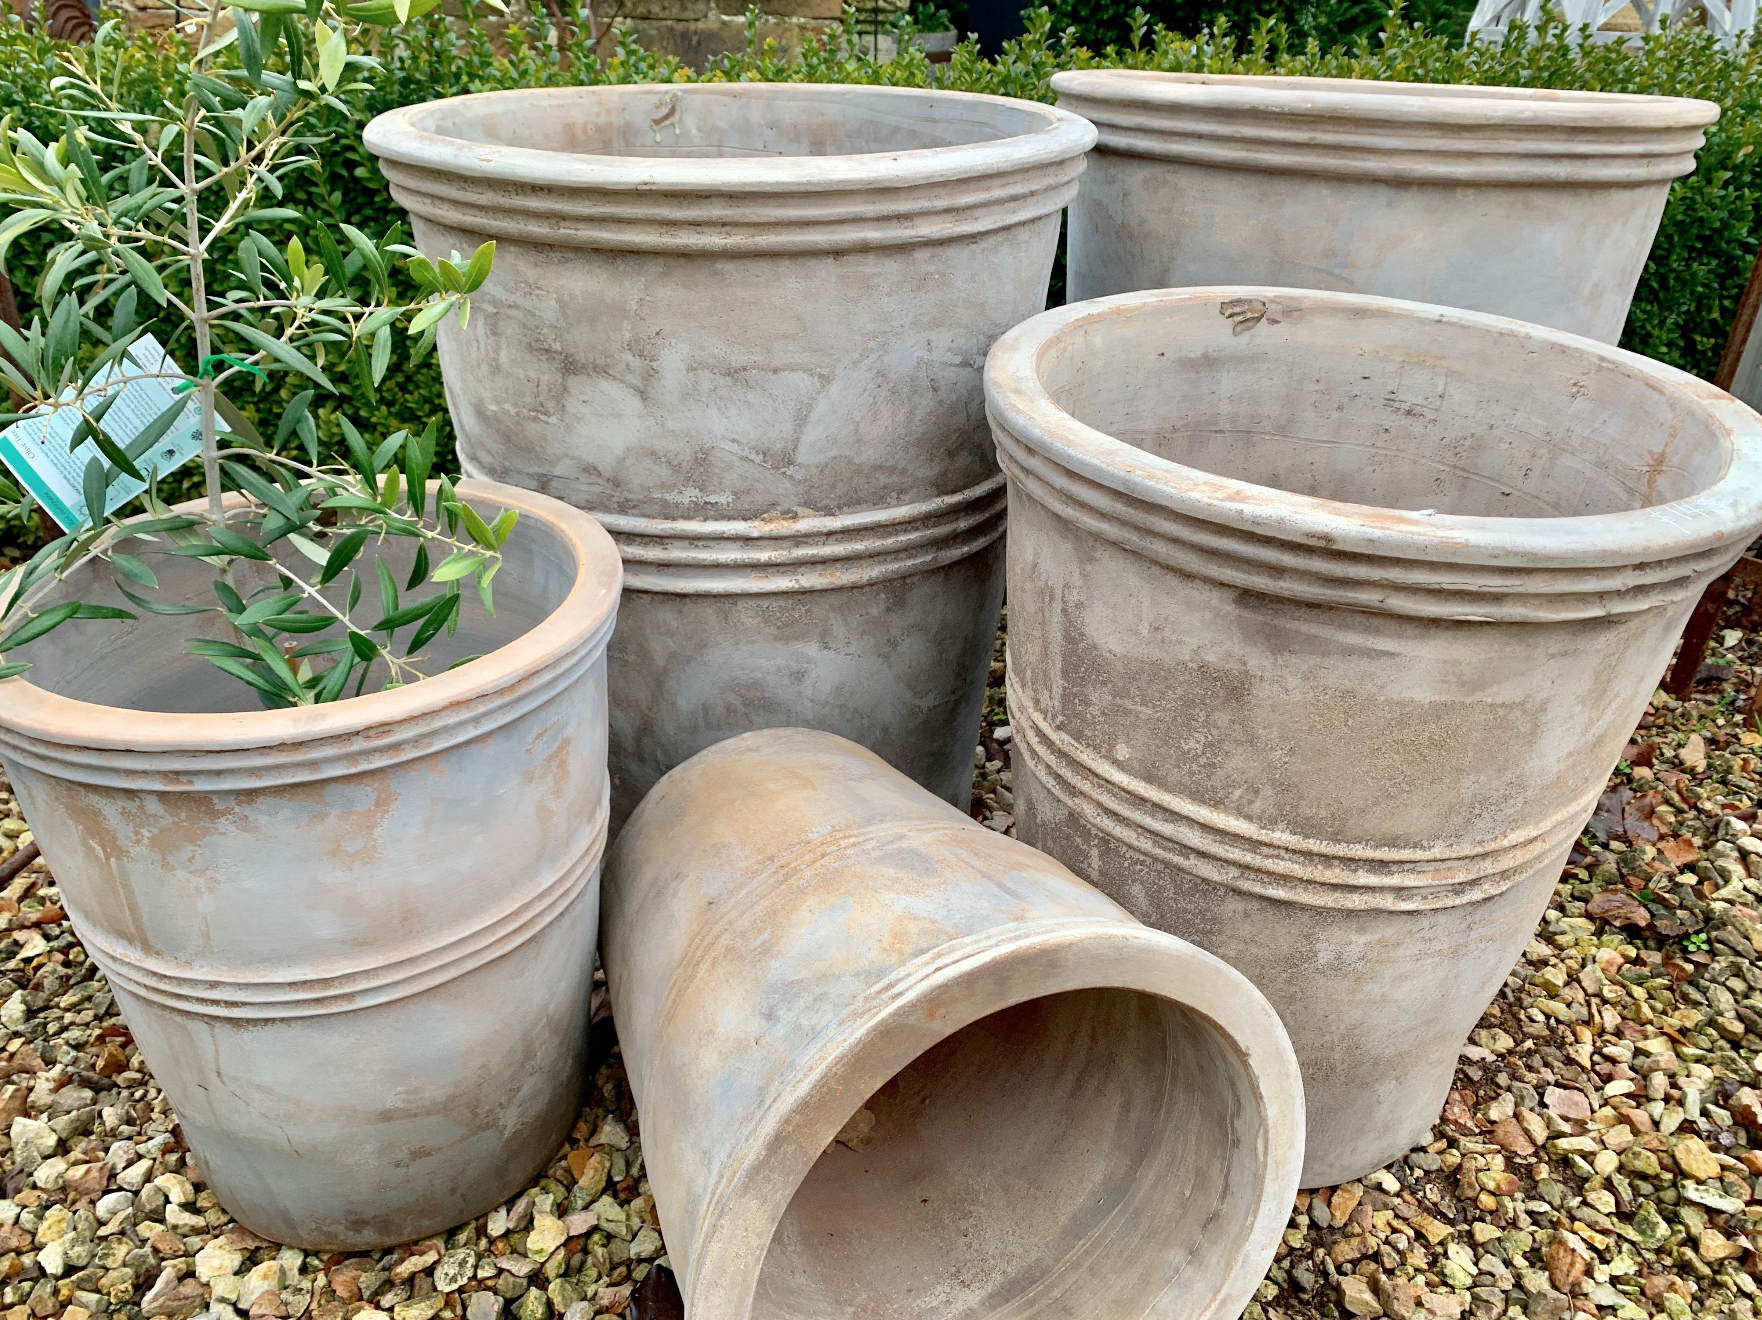 UP1 Antiqua terracotta Astra planters (available three sizes)  $72-$149